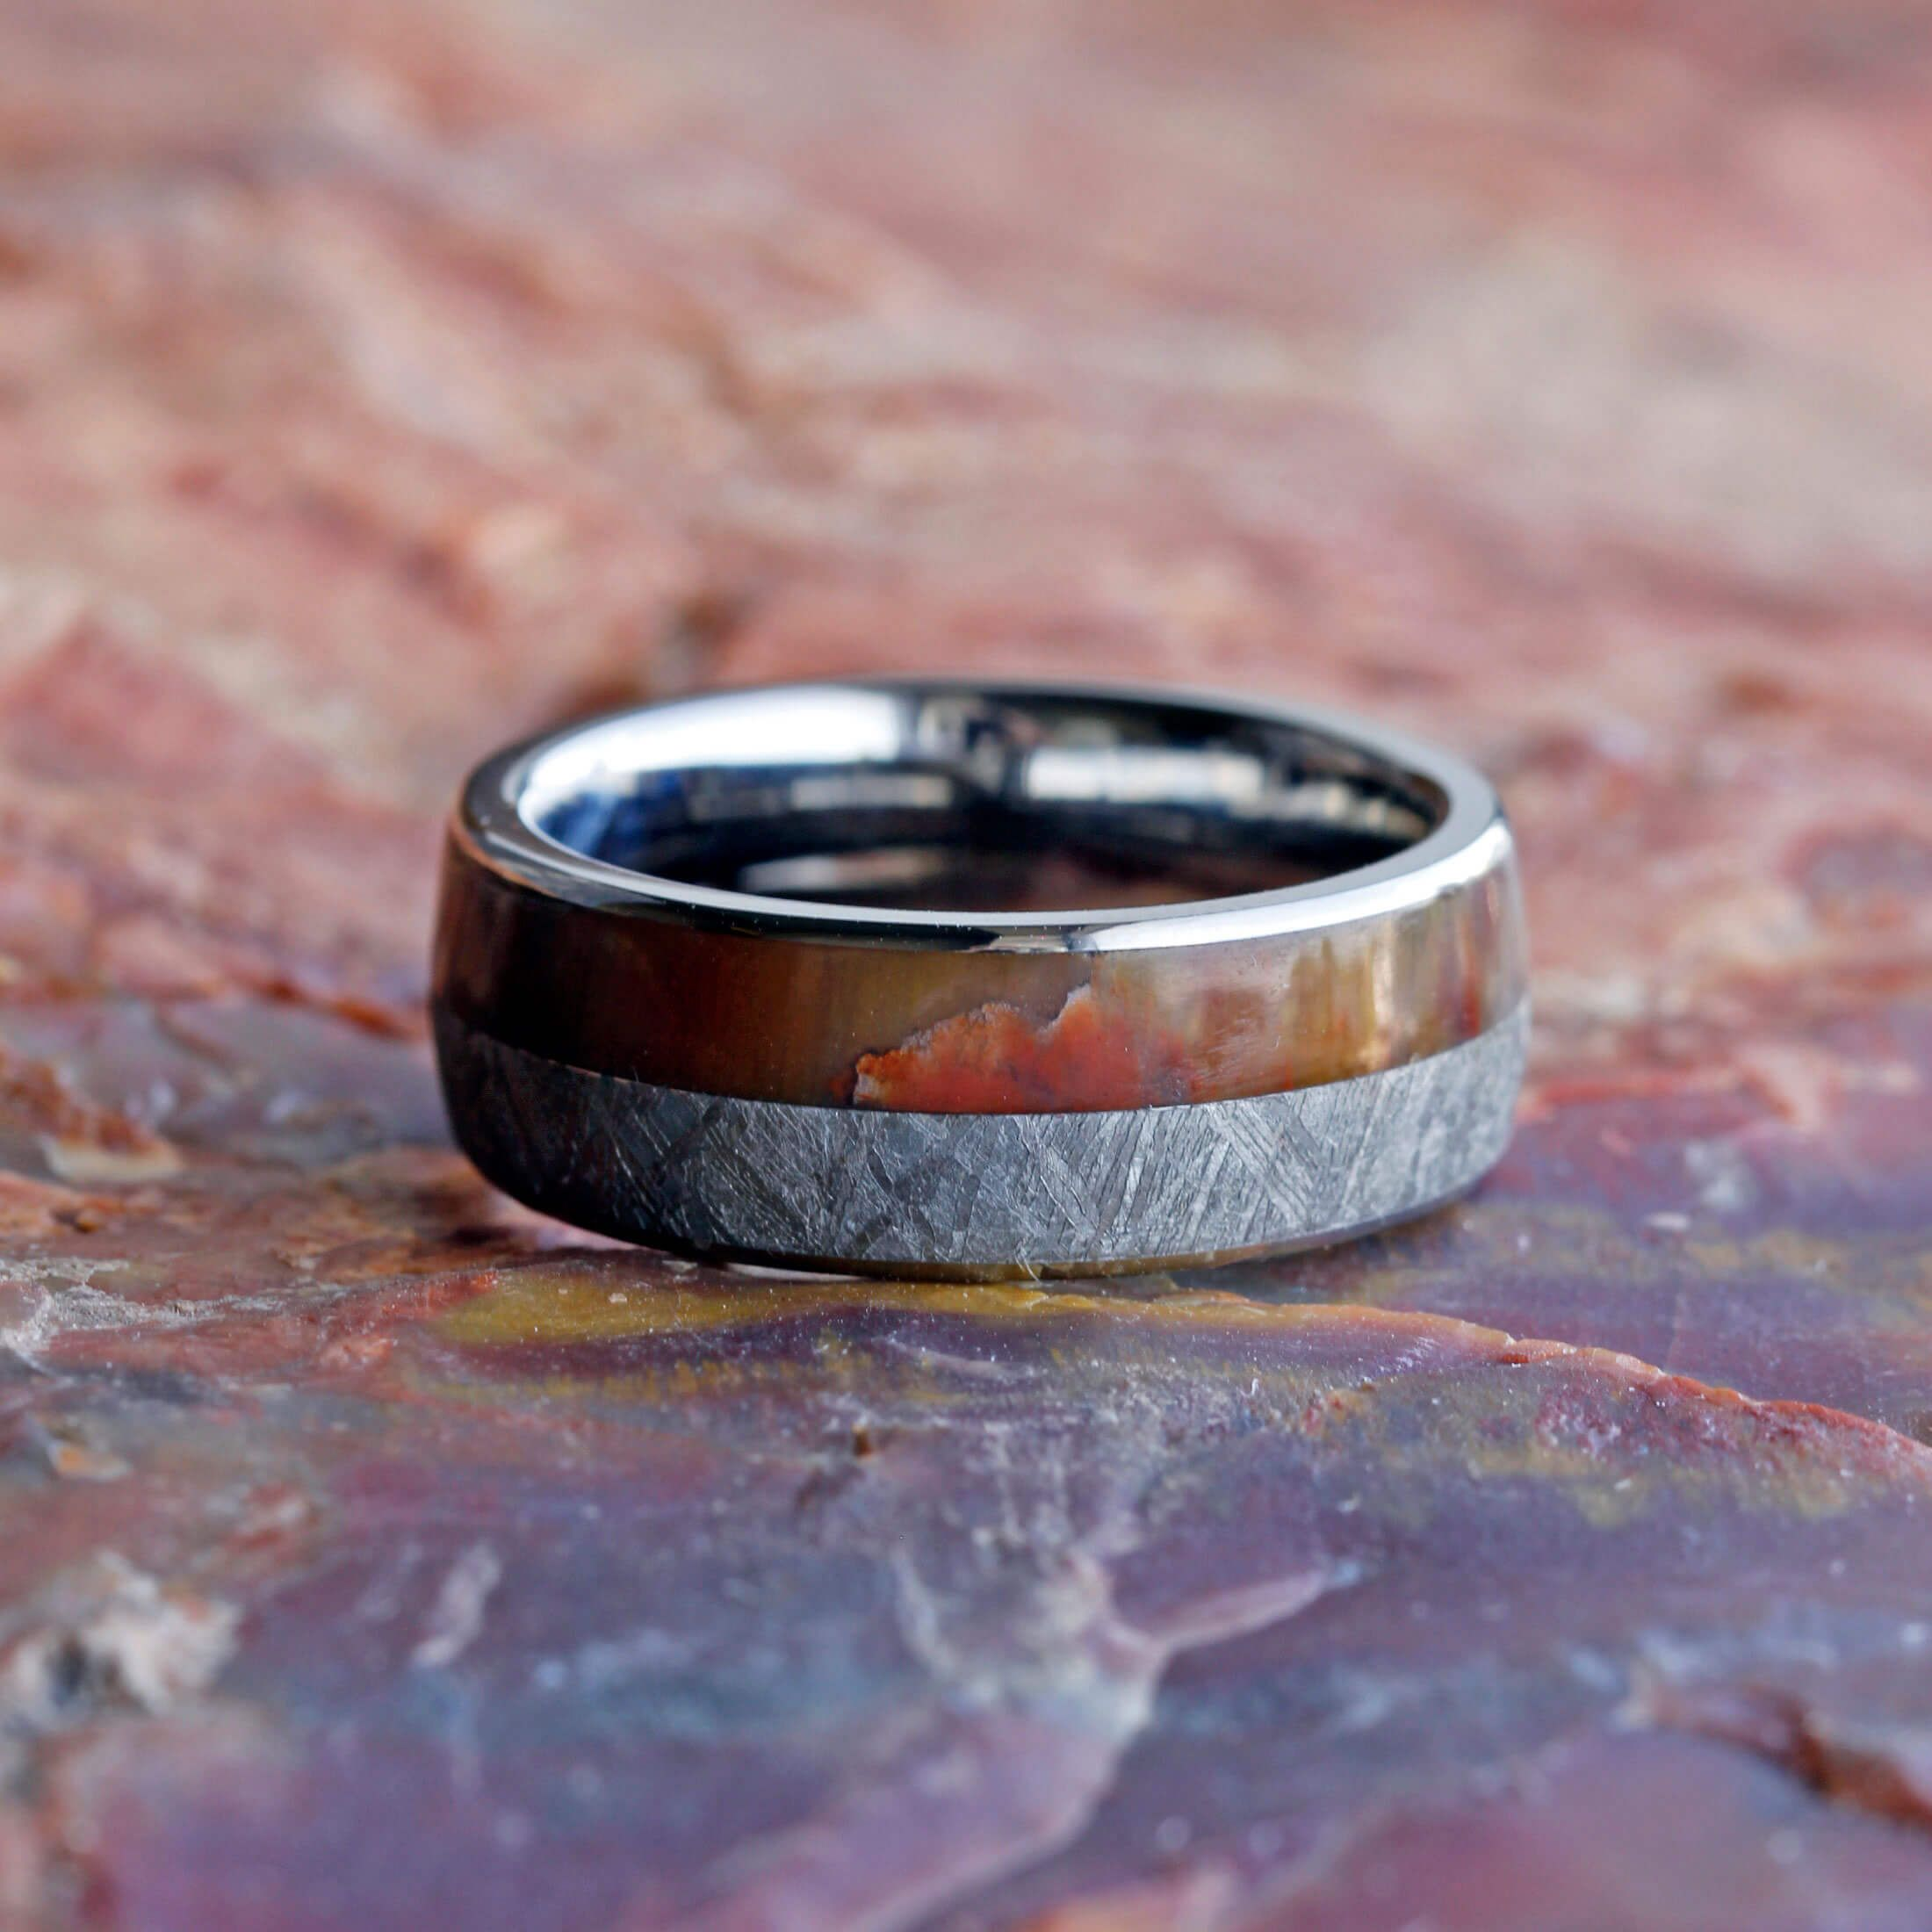 rings ring pin petrified onyx titanium mens meteorite band with for inlay crushed wood wedding engagement men